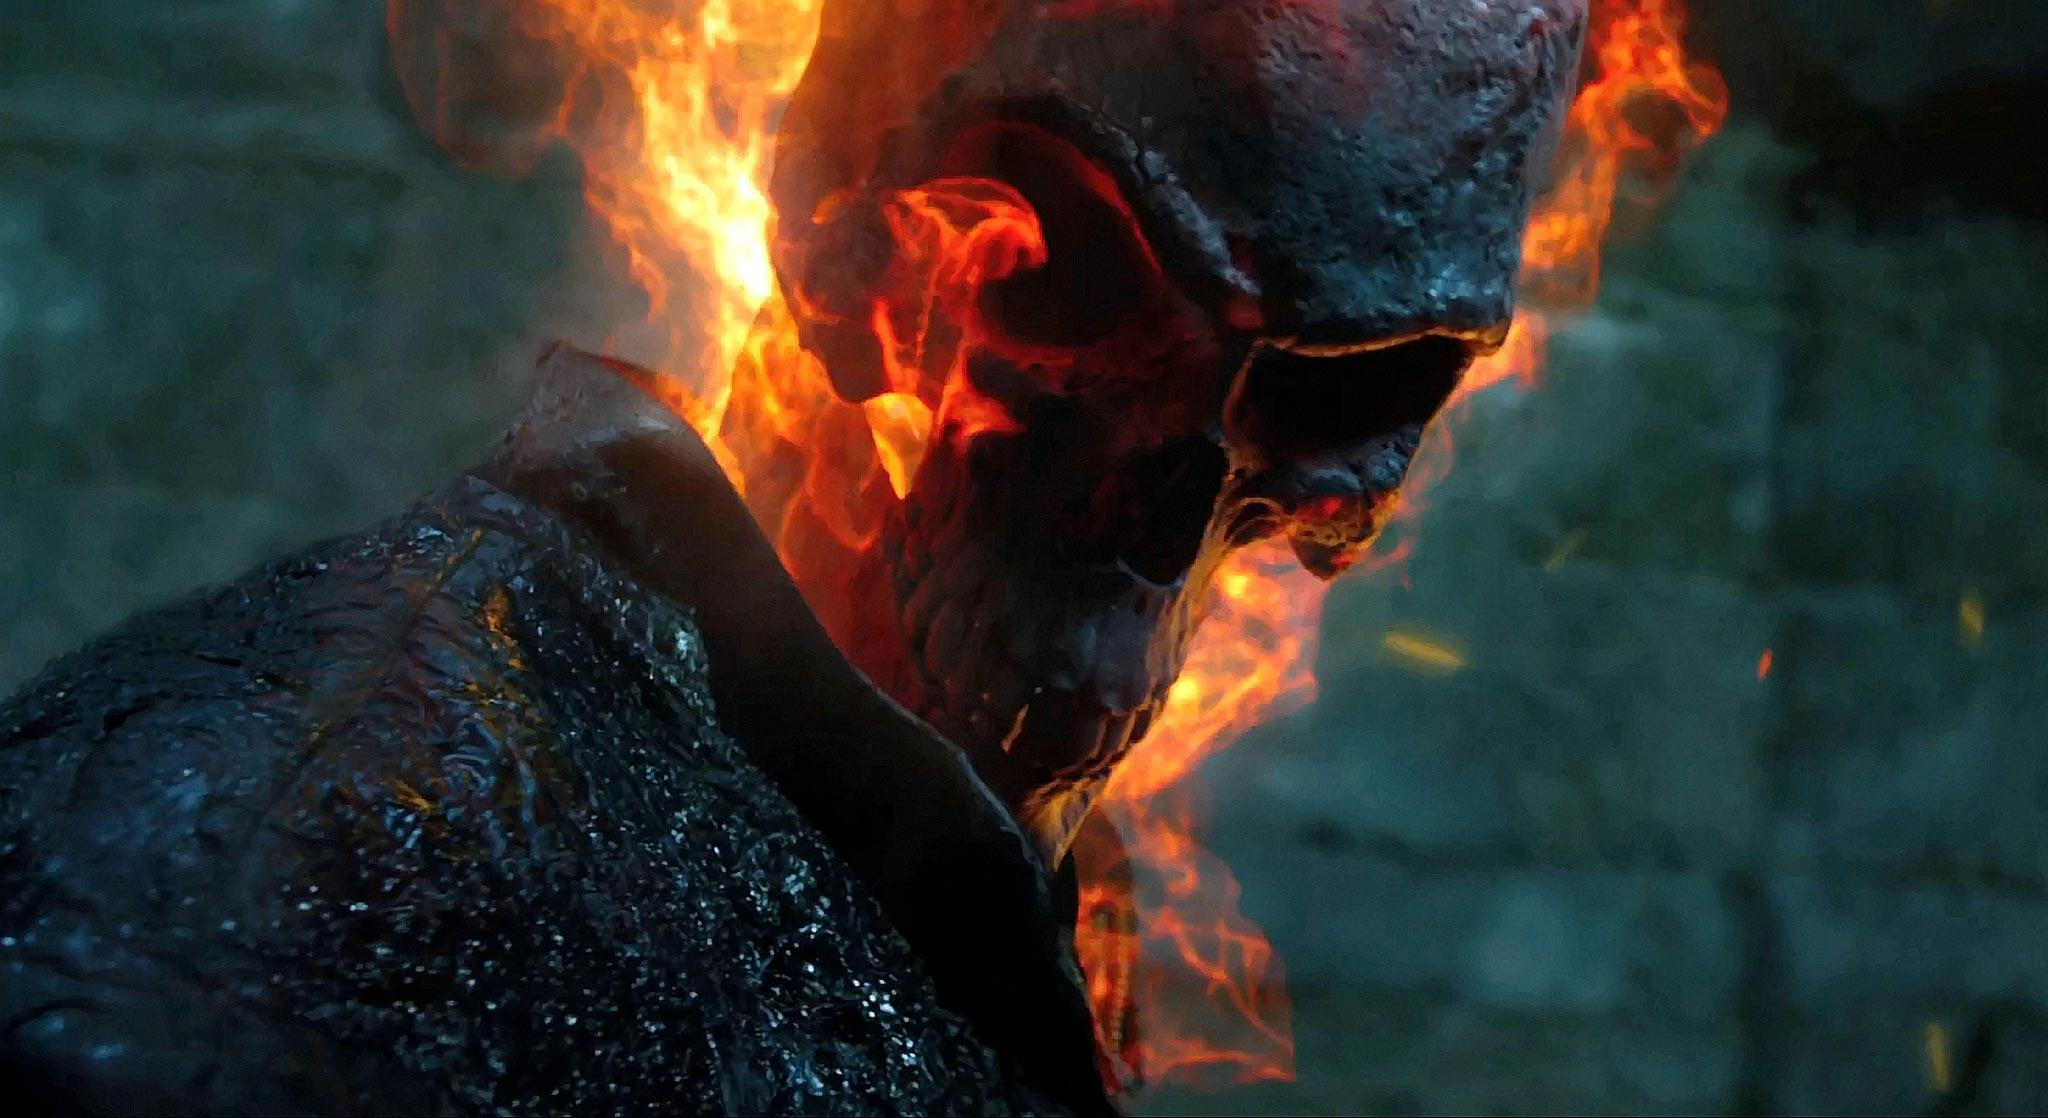 Ghost Rider Wallpapers 2015 - Wallpaper Cave